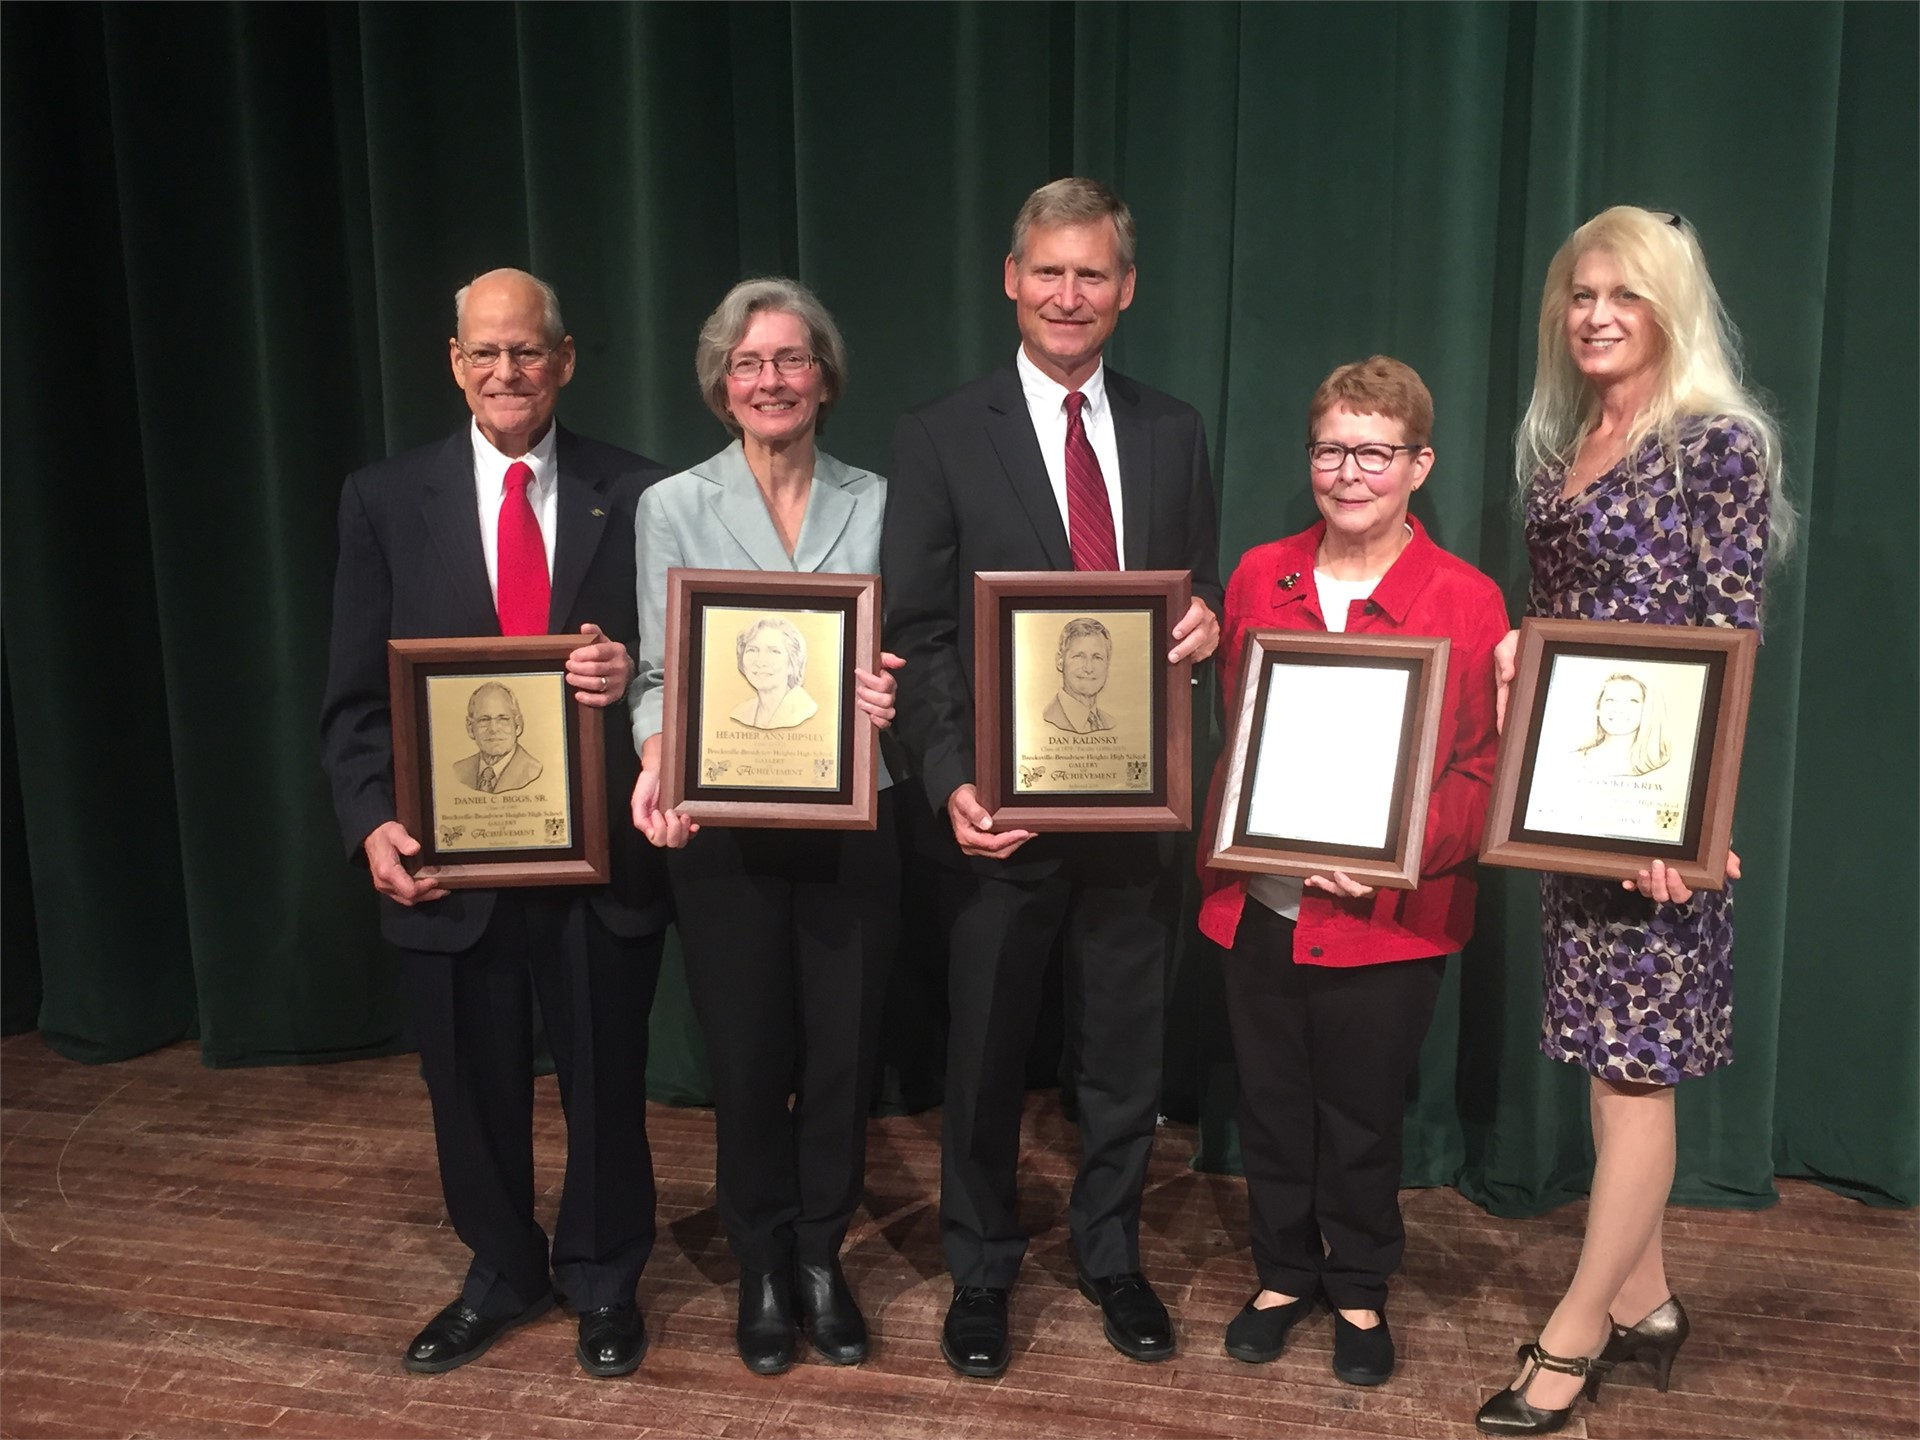 Alumni Association Gallery of Achievement Inductees c/o 2016